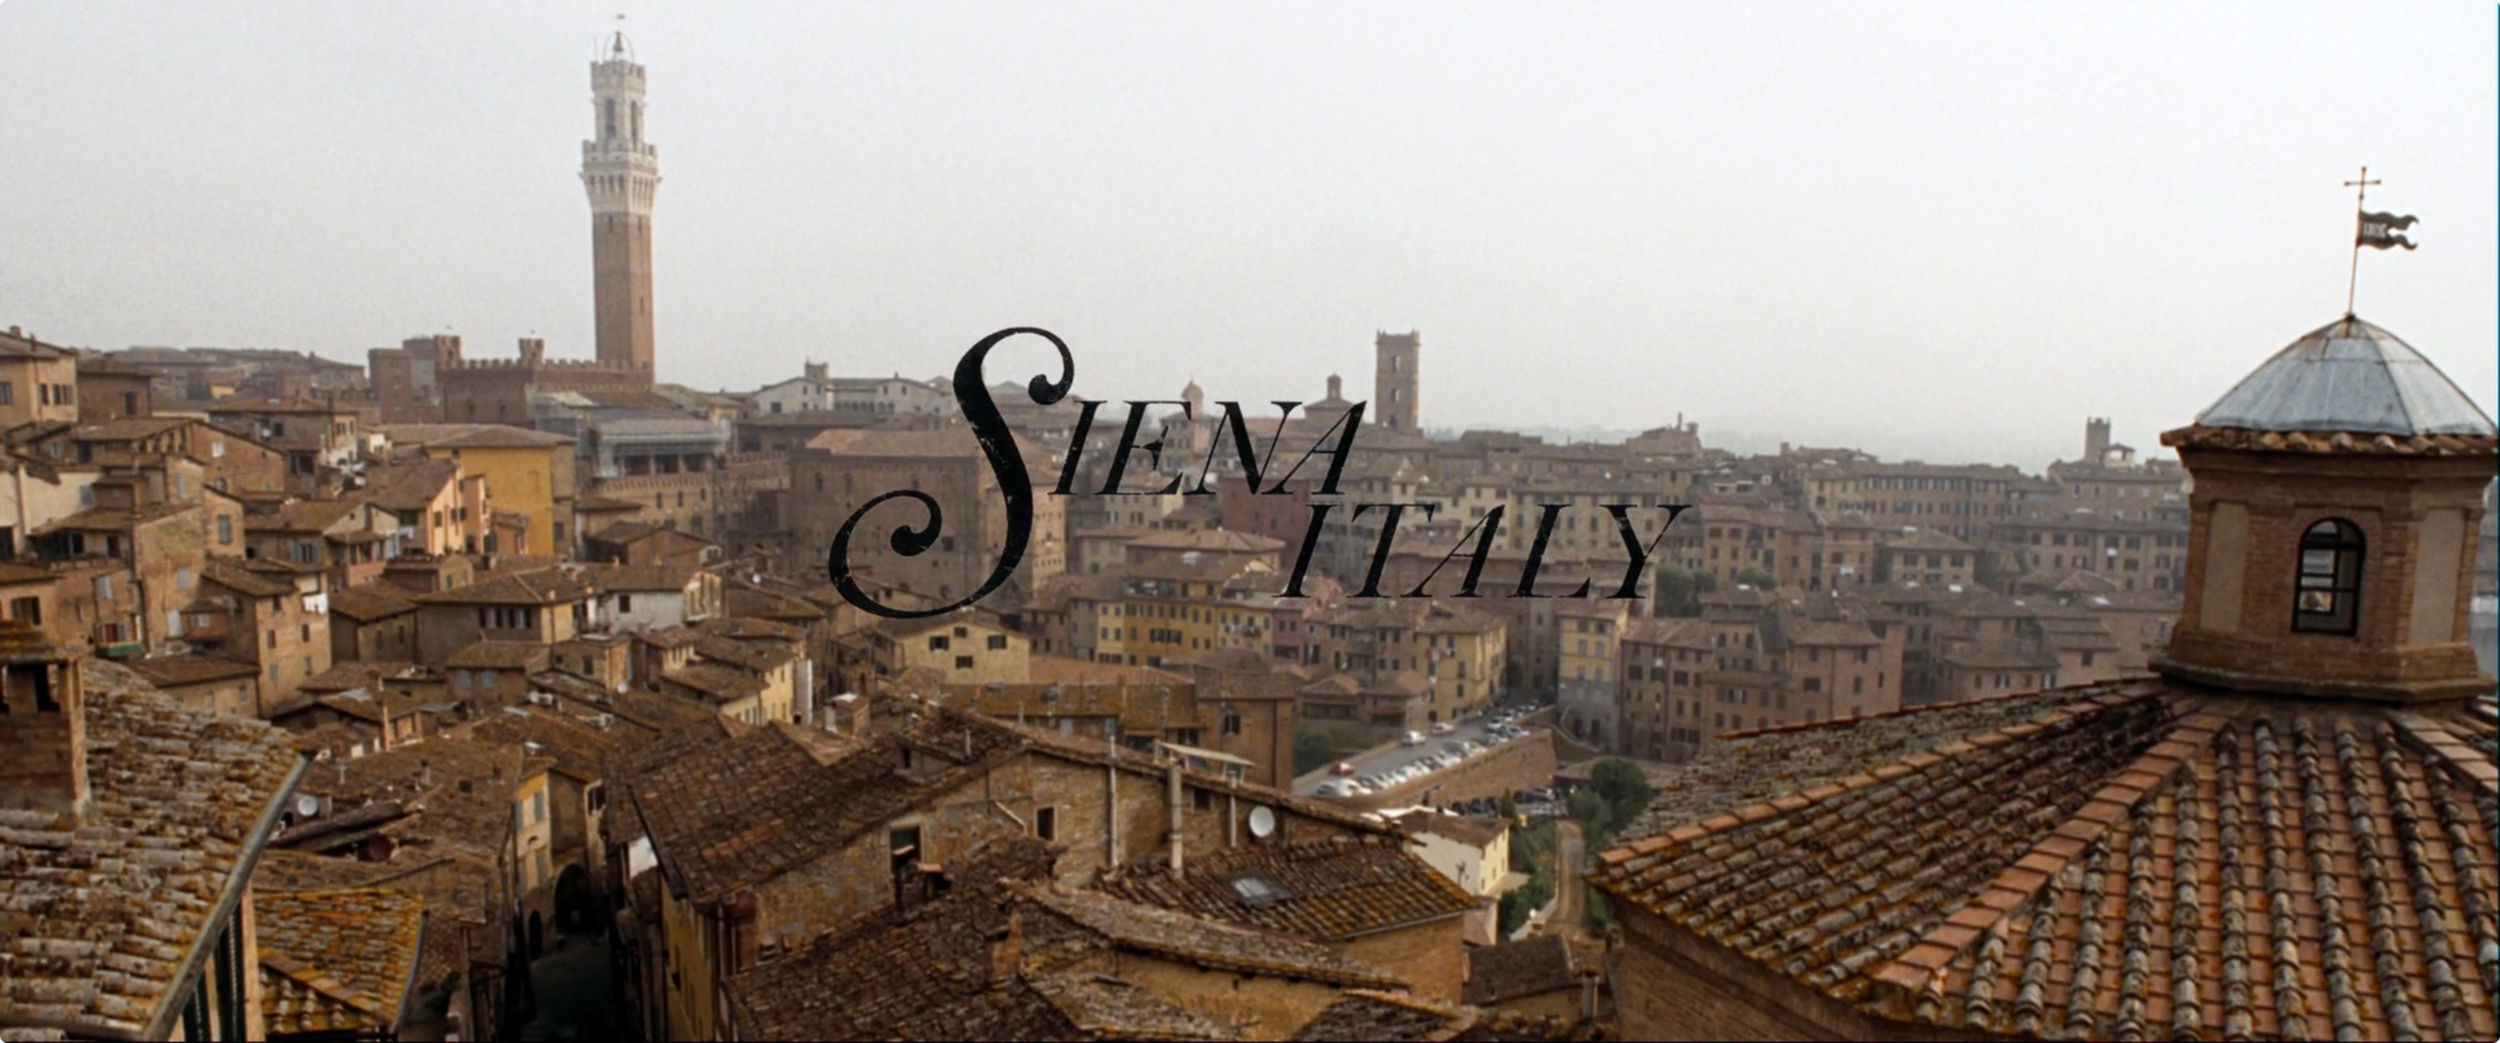 QOS-Sienna-Italy.png